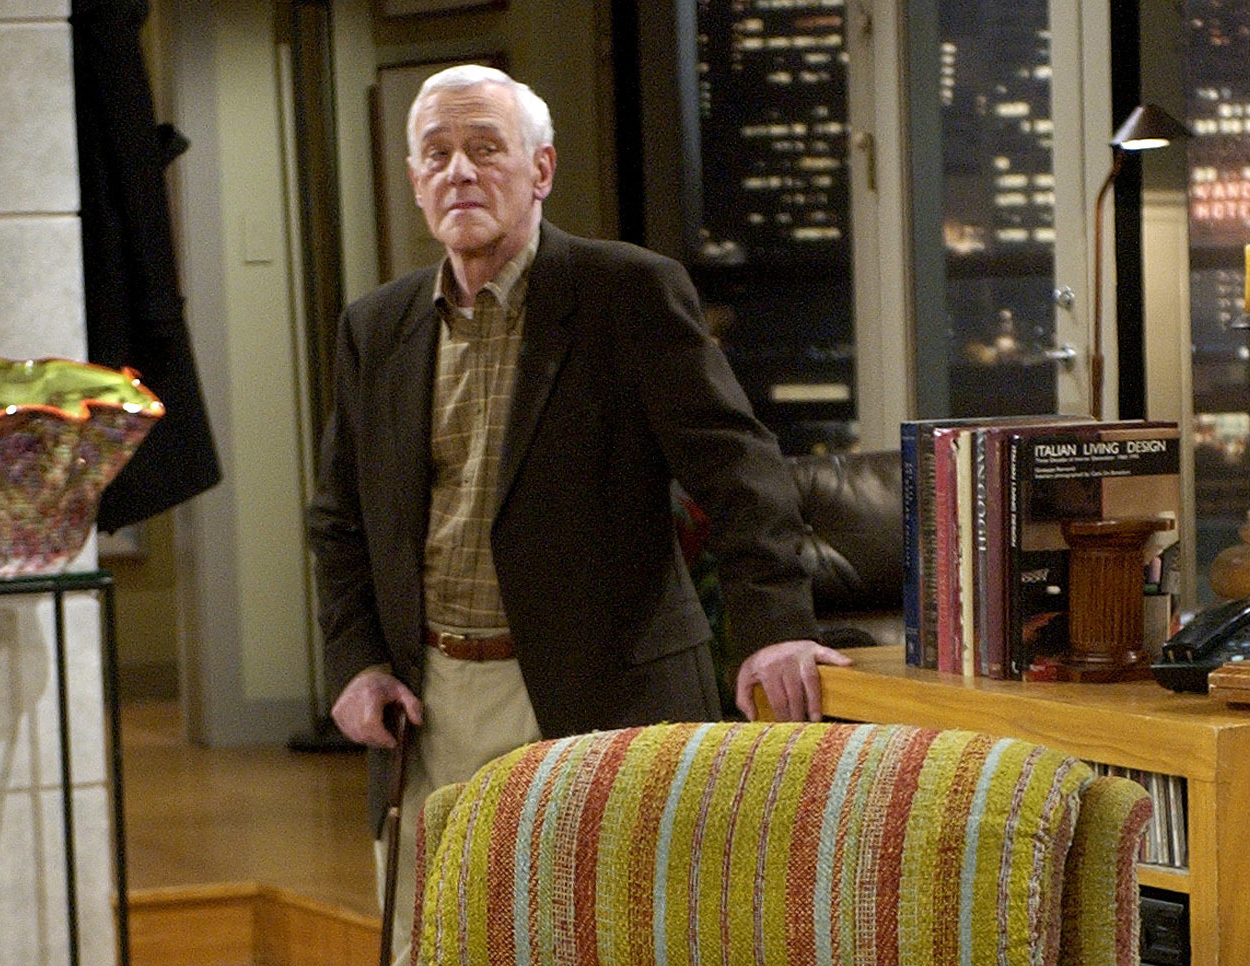 Actor was best known for playing Frasier's dad